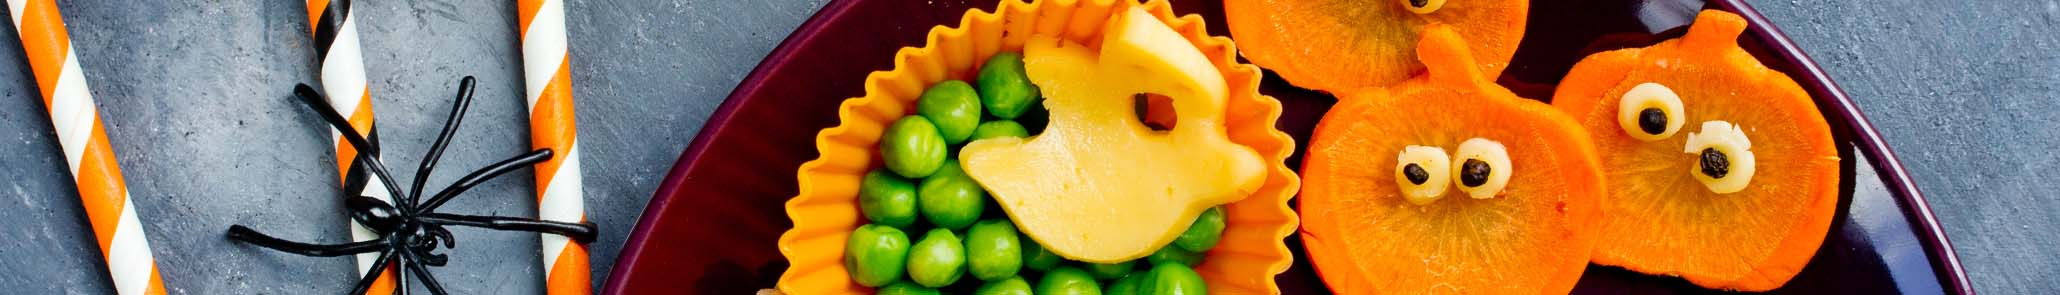 Rest In Peas with a Delicious Dinner for the Whole Family